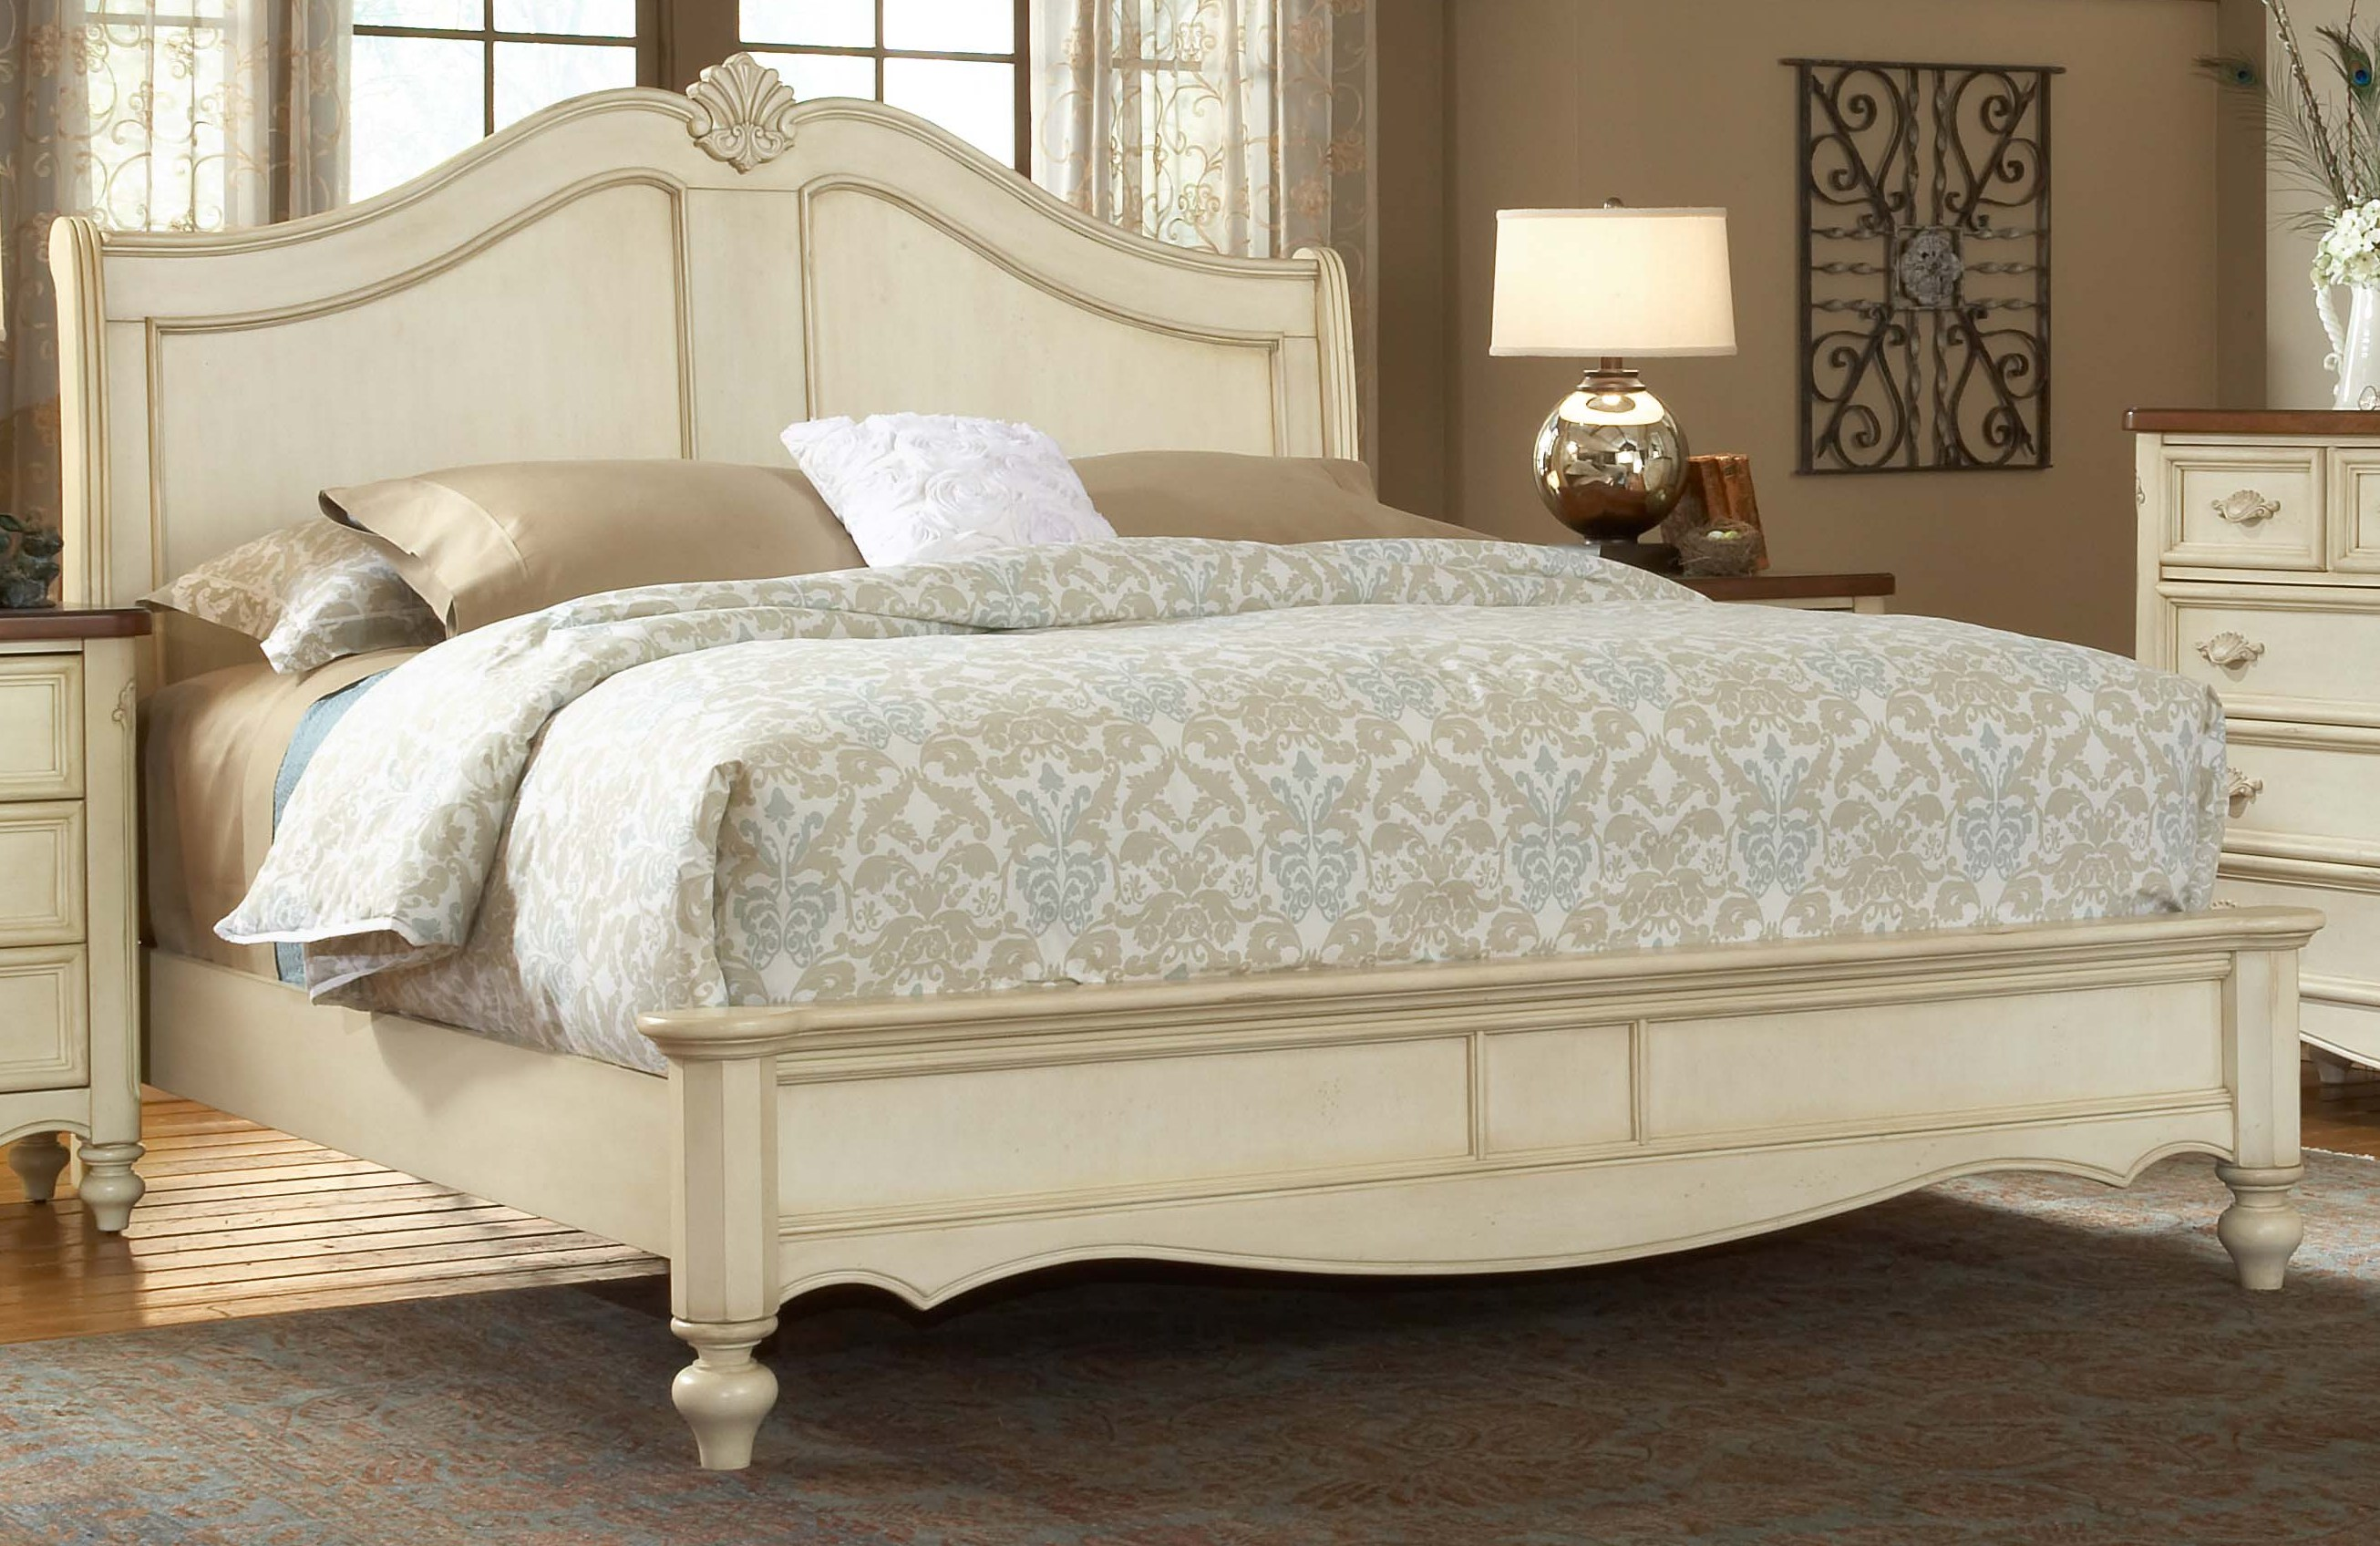 Top Antique White Sleigh Bed Queen 2611 x 1696 · 718 kB · jpeg